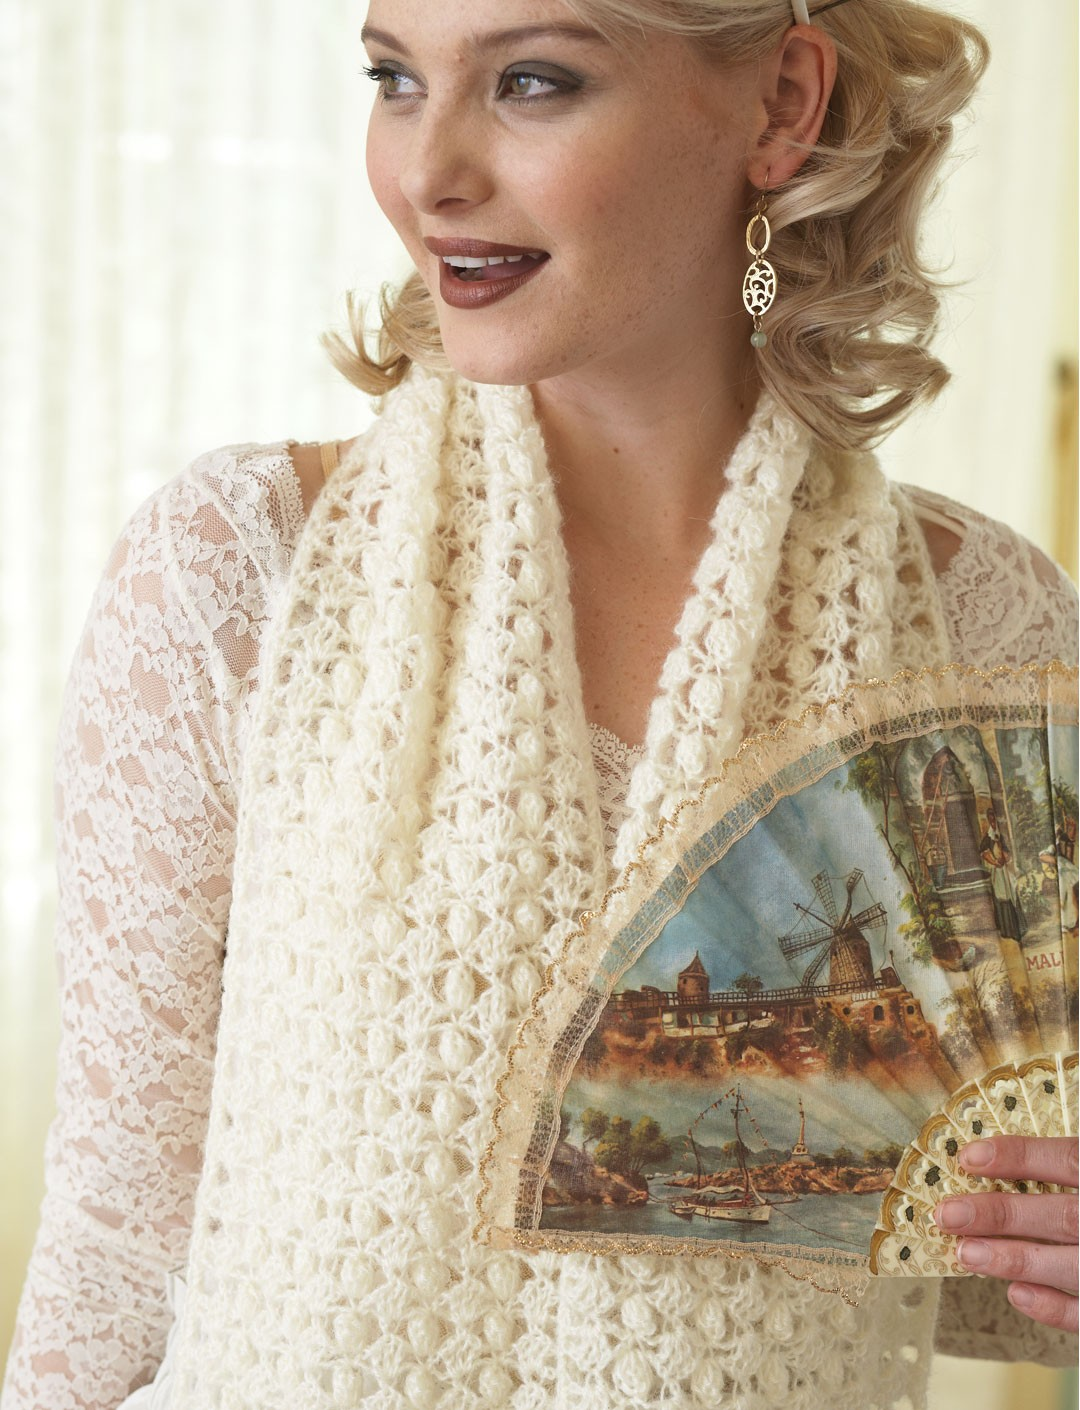 Free Crochet Patterns Using Patons Lace Yarn : Patons Delicate Scarf, Crochet Pattern Yarnspirations